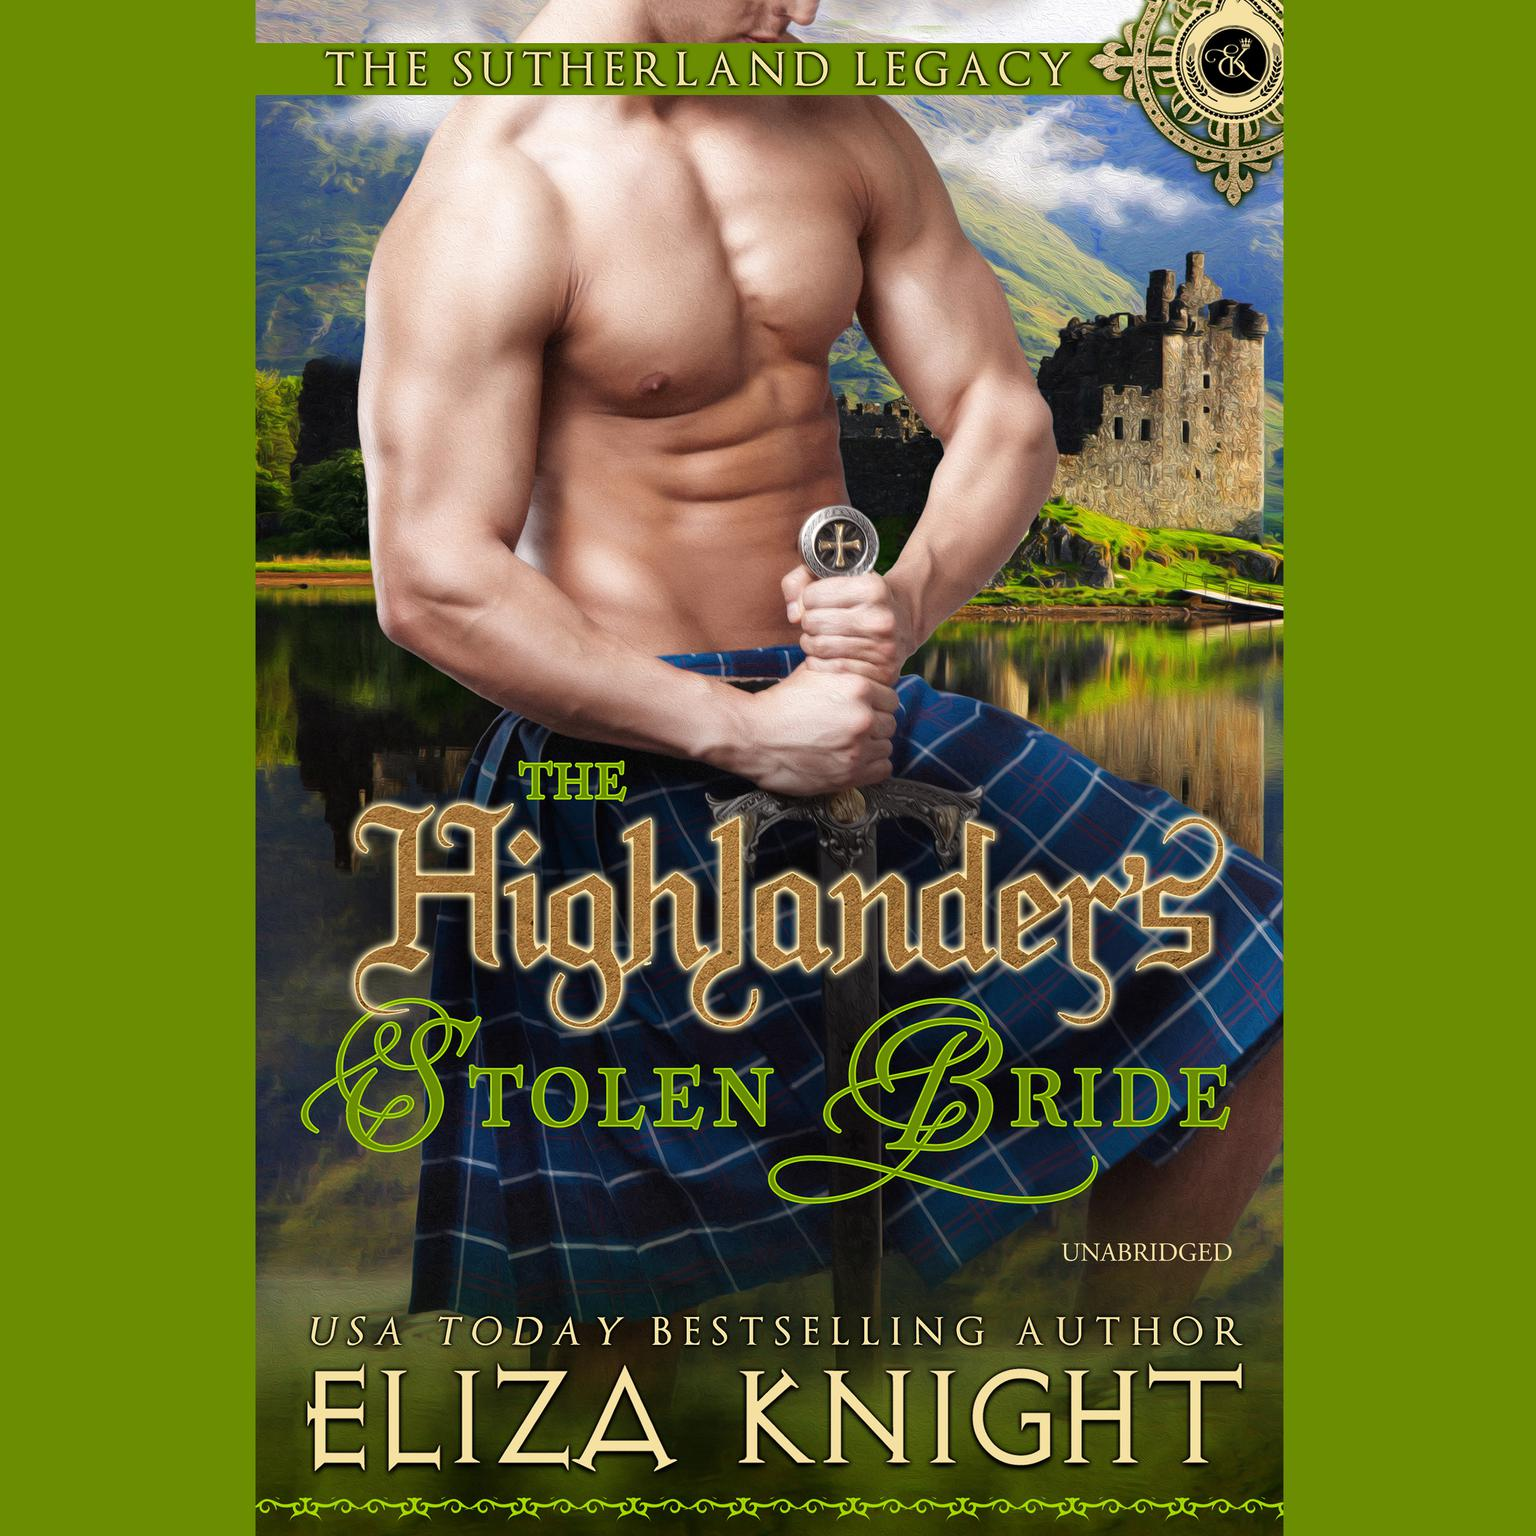 Printable The Highlander's Stolen Bride Audiobook Cover Art